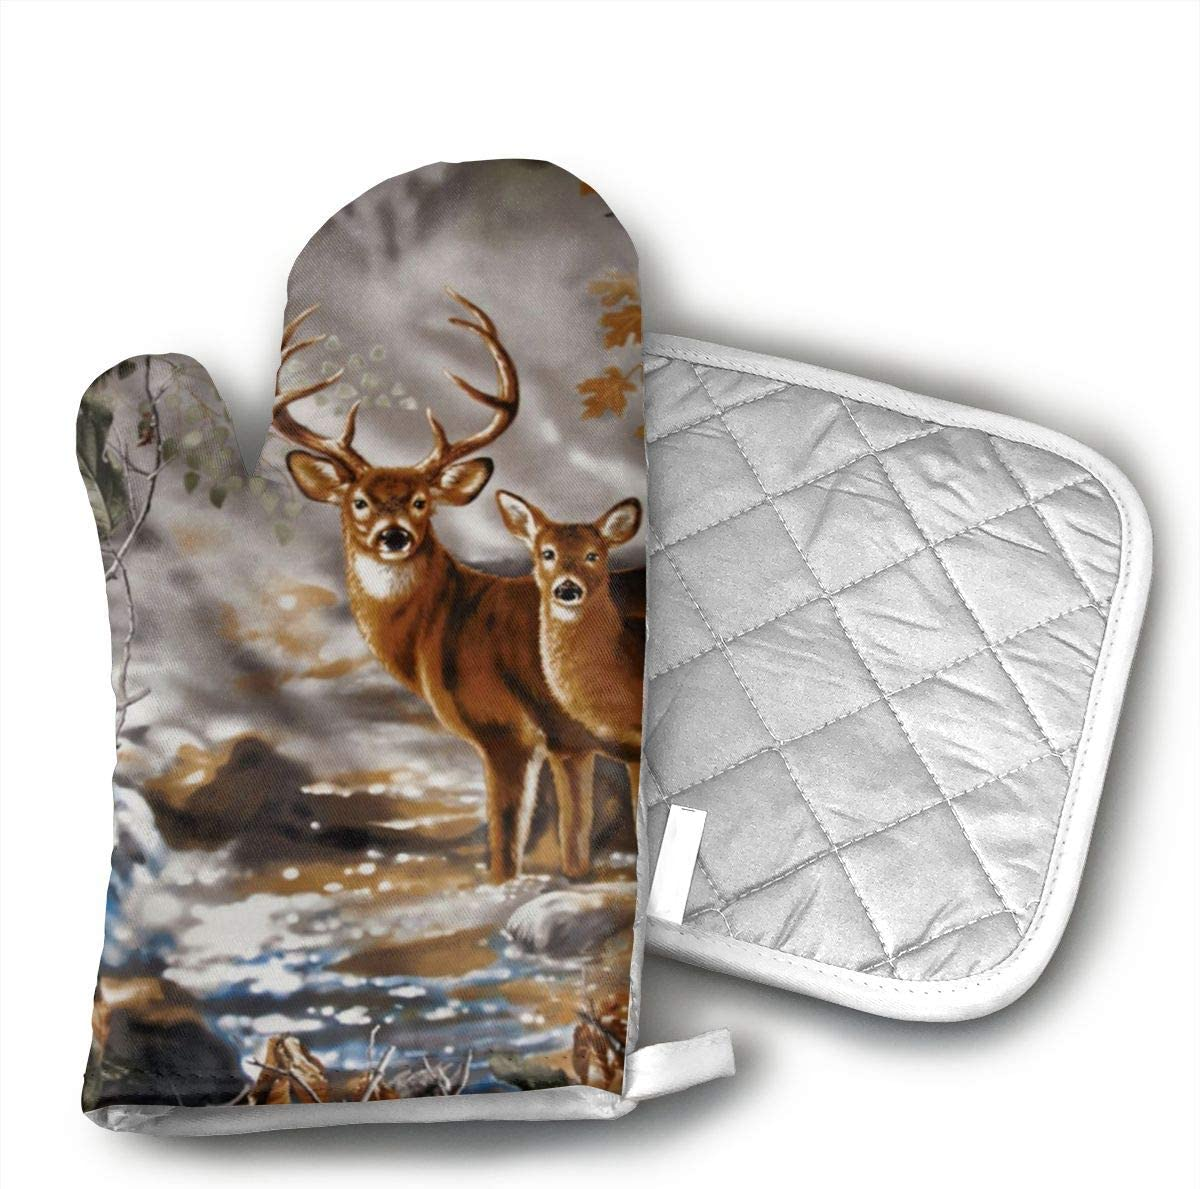 Wiqo9 Real Tree Camouflage Deer Oven Mitts and Pot Holders Kitchen Mitten Cooking Gloves,Cooking, Baking, BBQ.